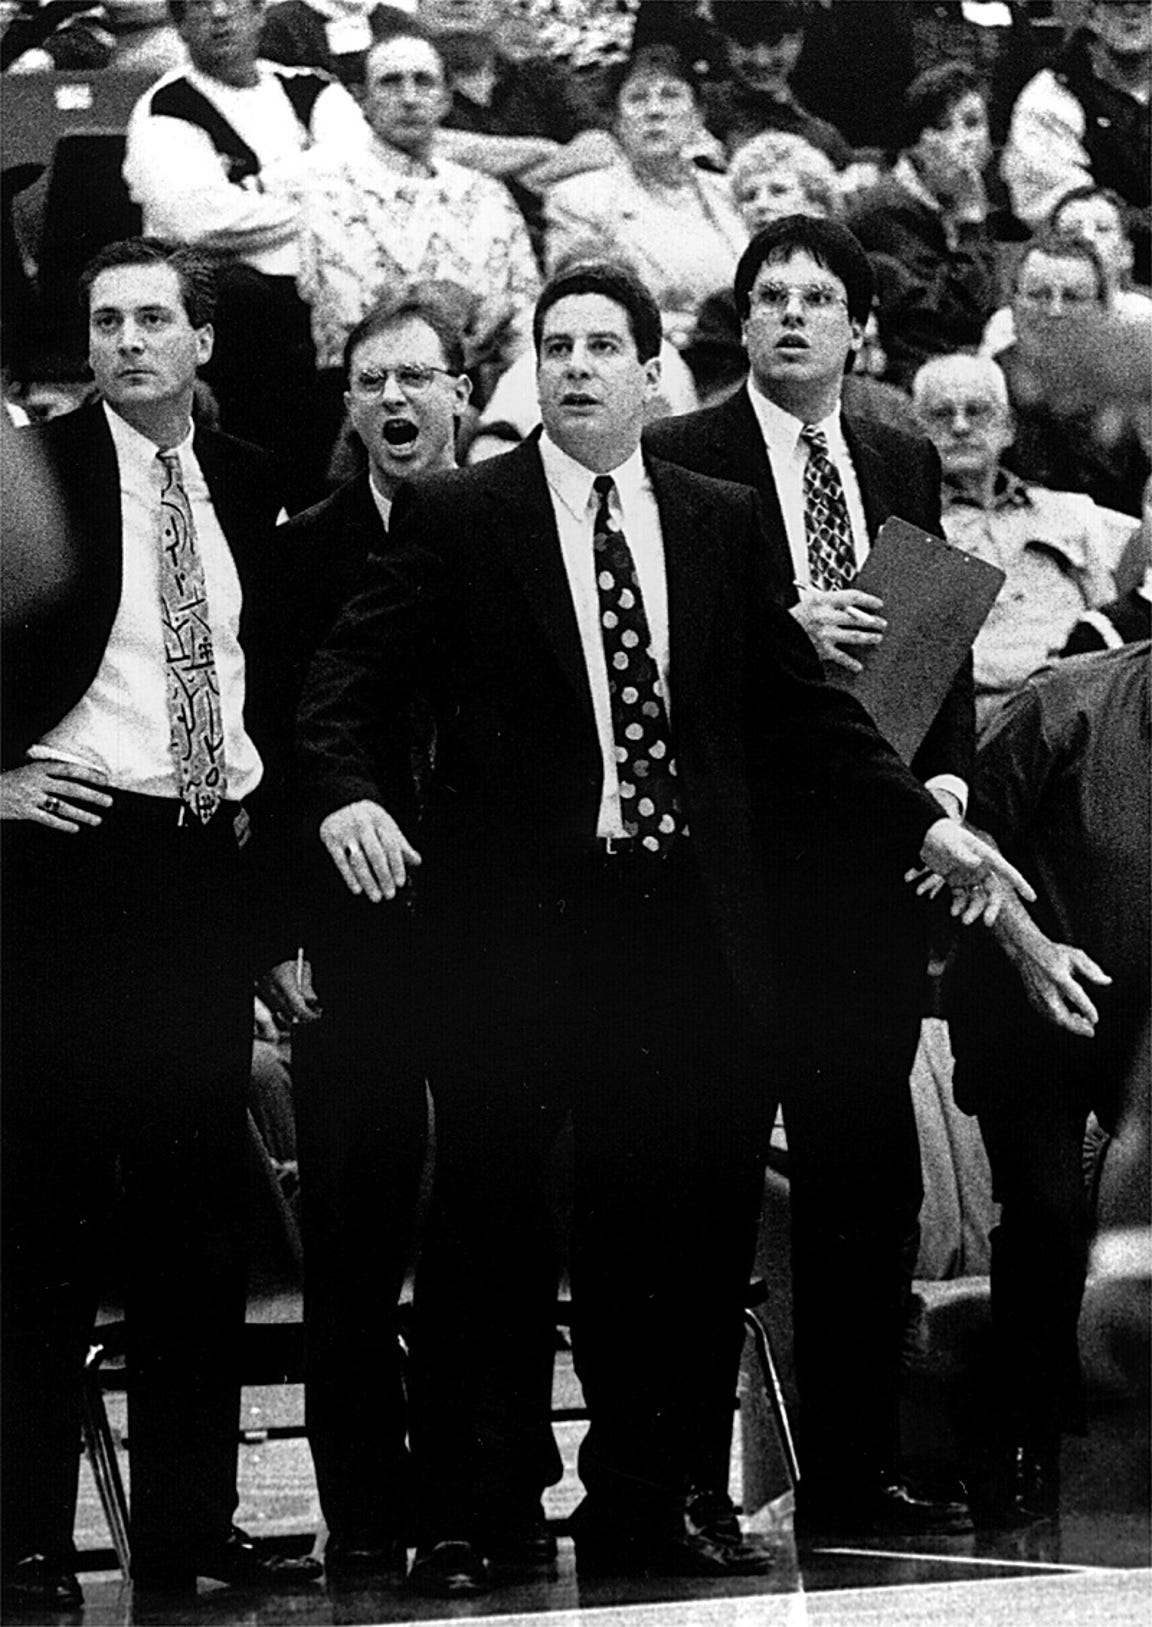 Bruce Pearl, now the coach at Auburn, coached USI to a national championship and a runner-up finish in the 1990s.